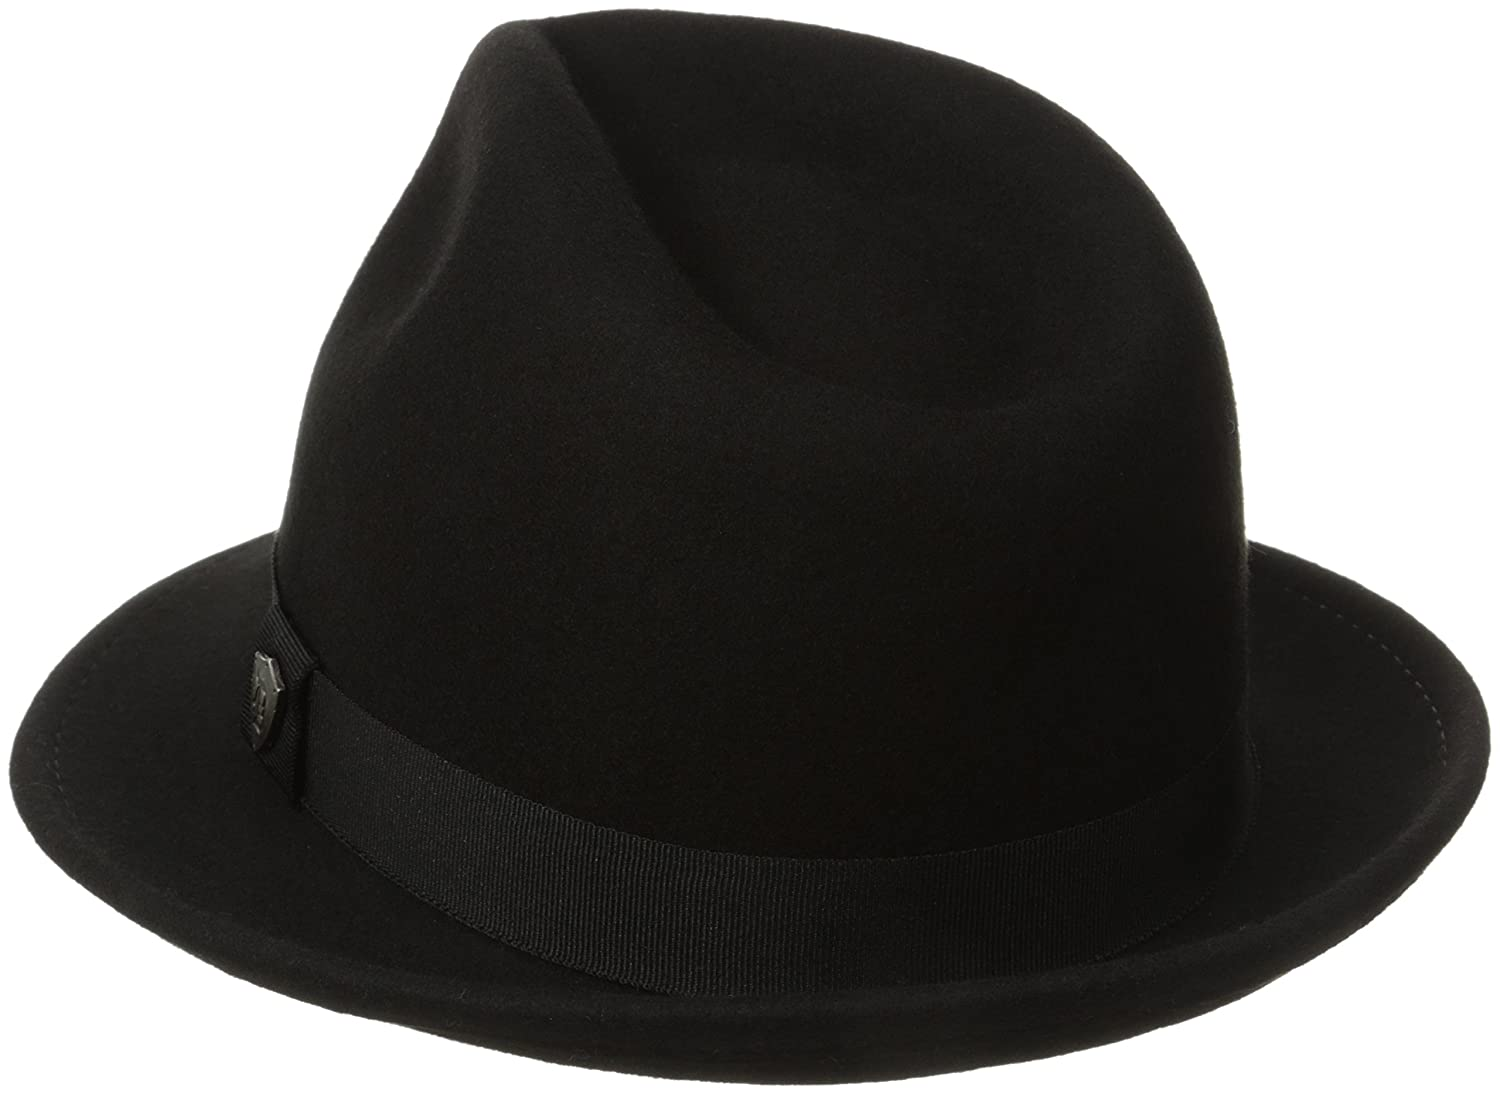 1920s Men's Hats – 8 Popular Styles Dorfman Wool Felt Hat $44.95 AT vintagedancer.com